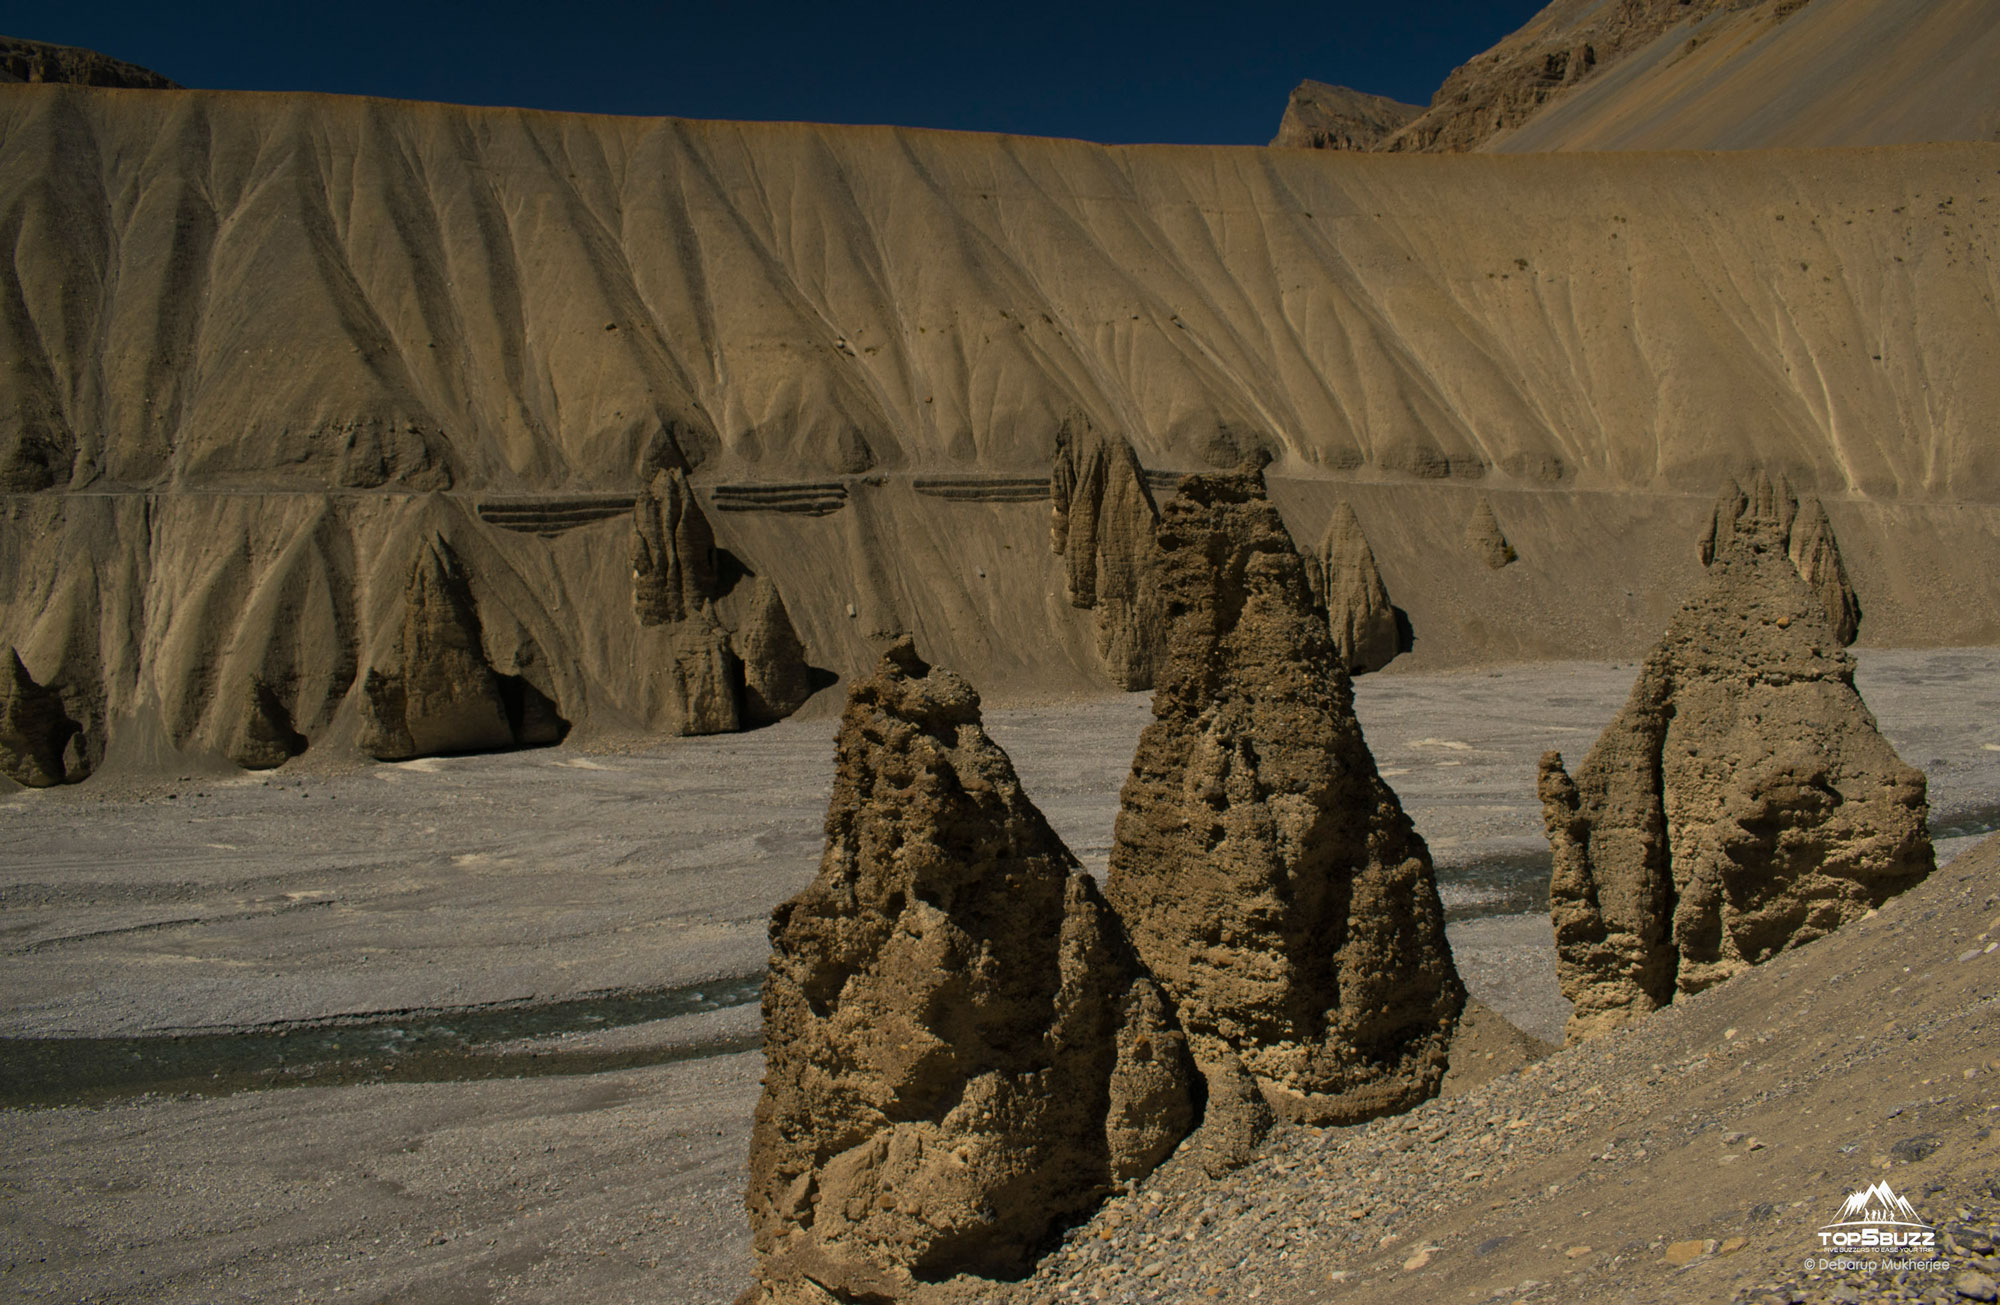 Rock Structures in Spiti Valley